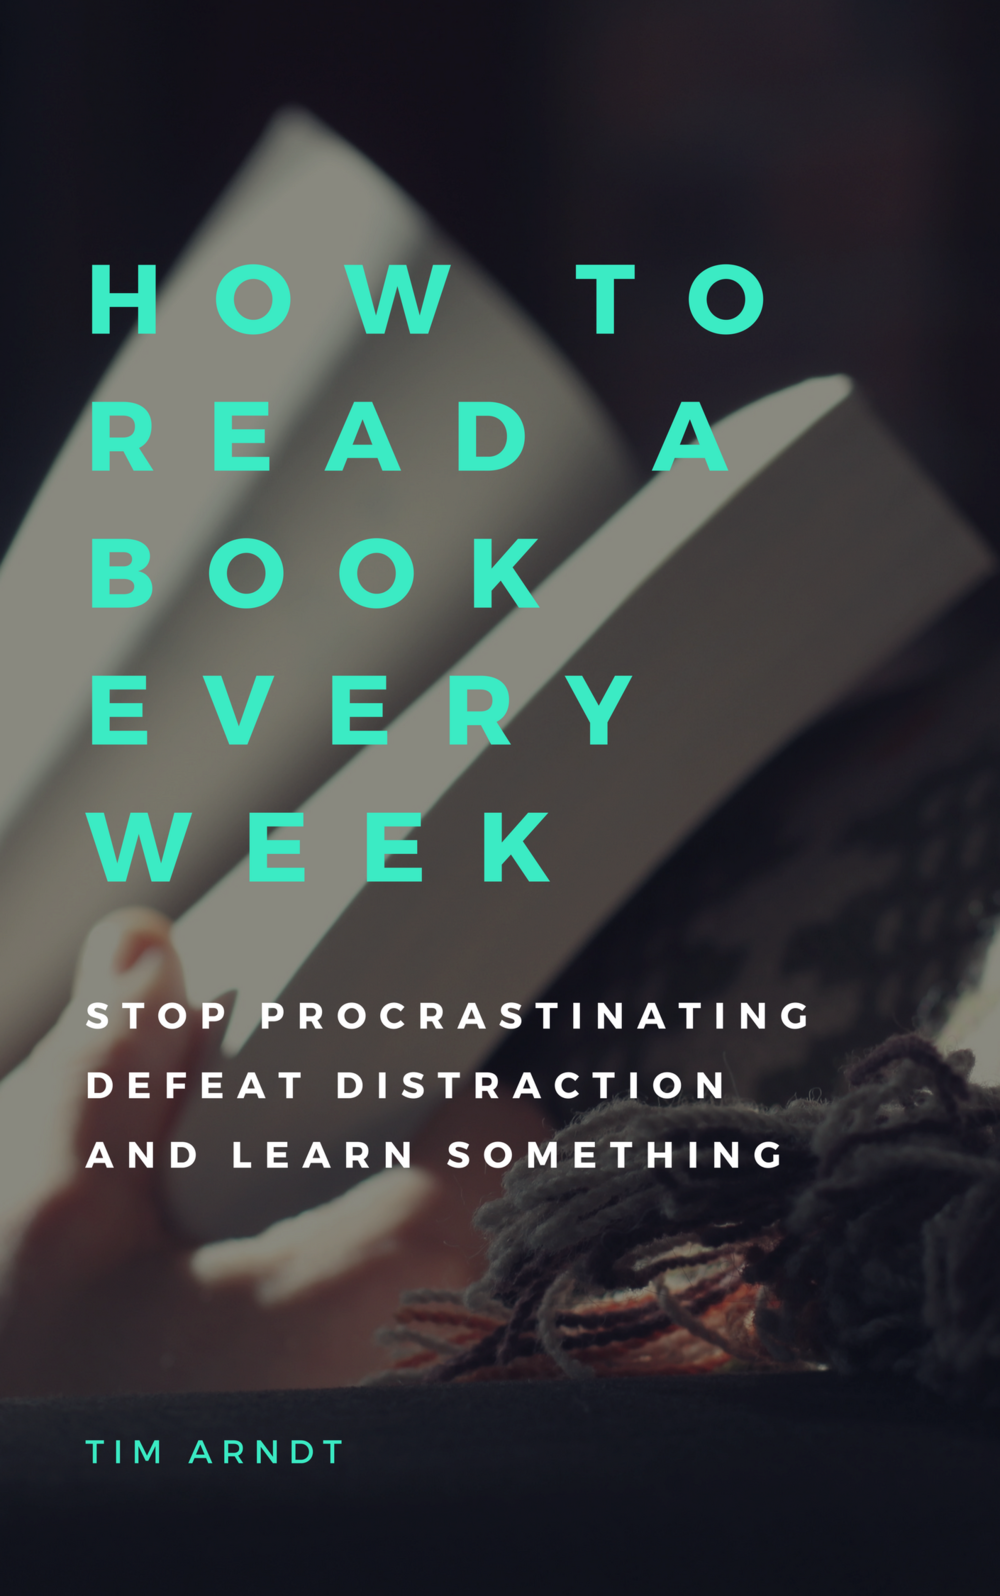 Be the reader you want to be starting today. - In less than 15 minutes you will have all the necessary tools to easily read over 50 books in a year. It doesn't matter if you're a slow reader like me. I'll show you how to beat distractions and get reading.Subscribe to get your free copy today.